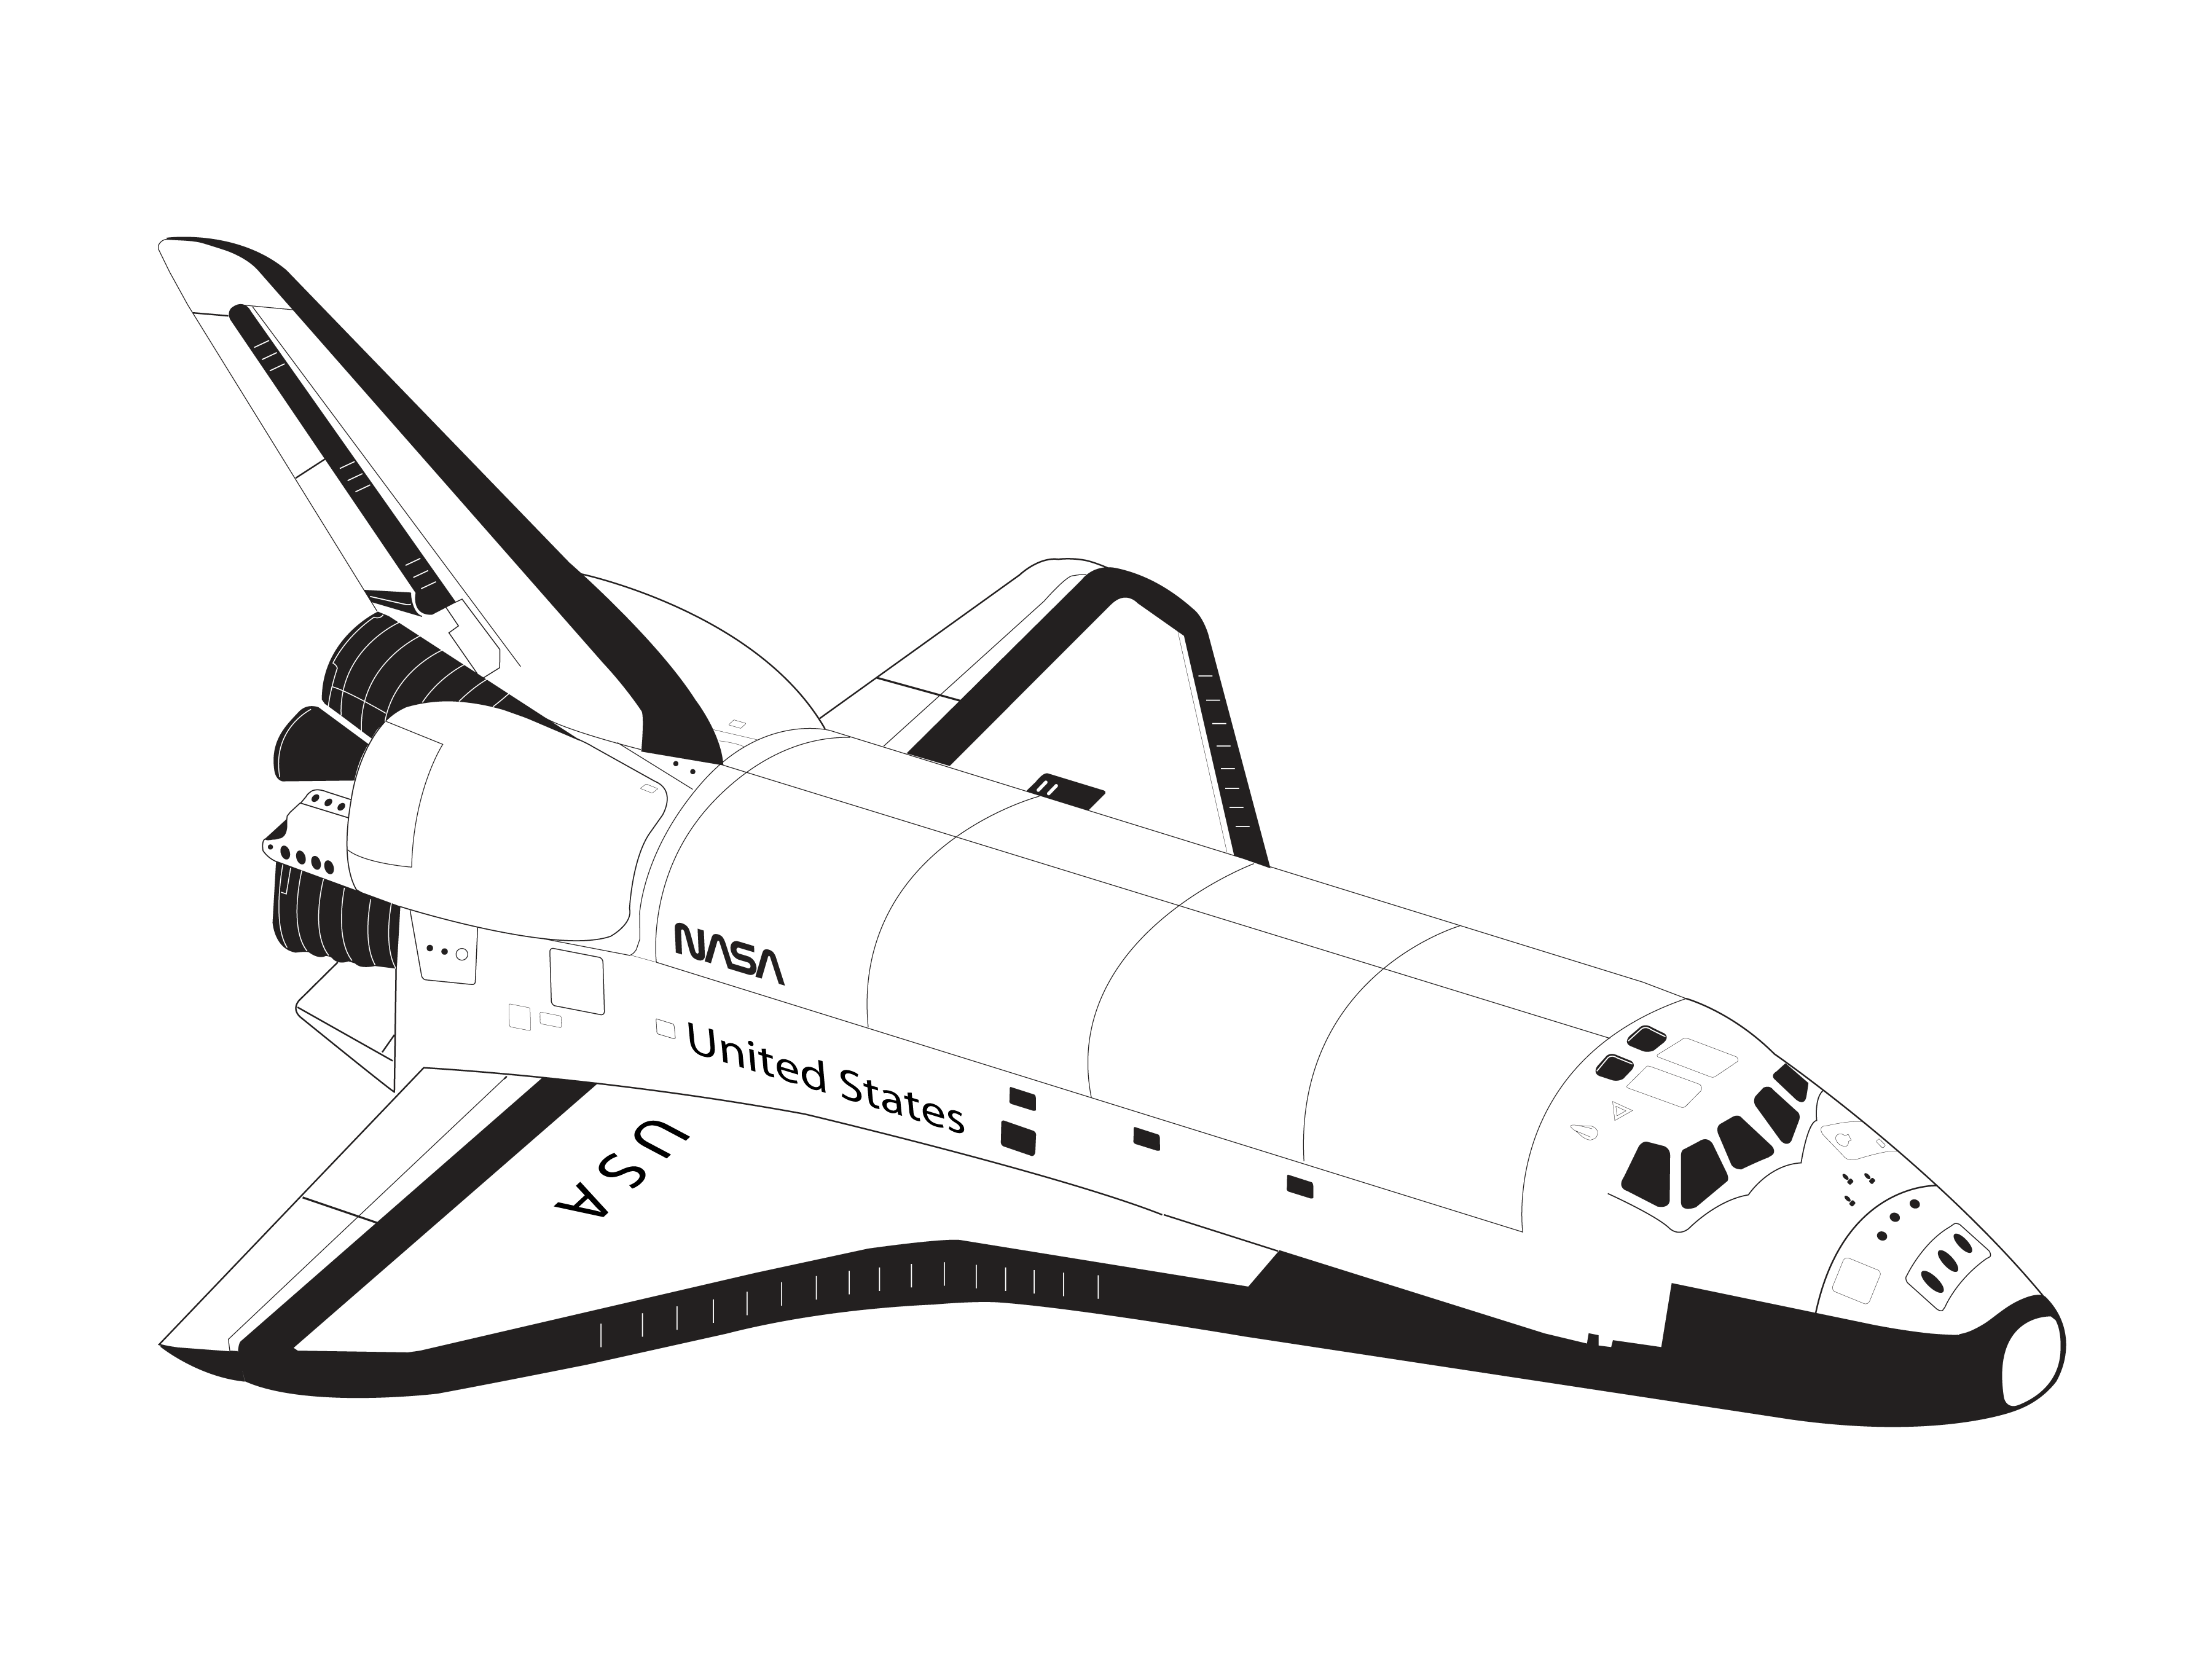 new space shuttle illustration - photo #23